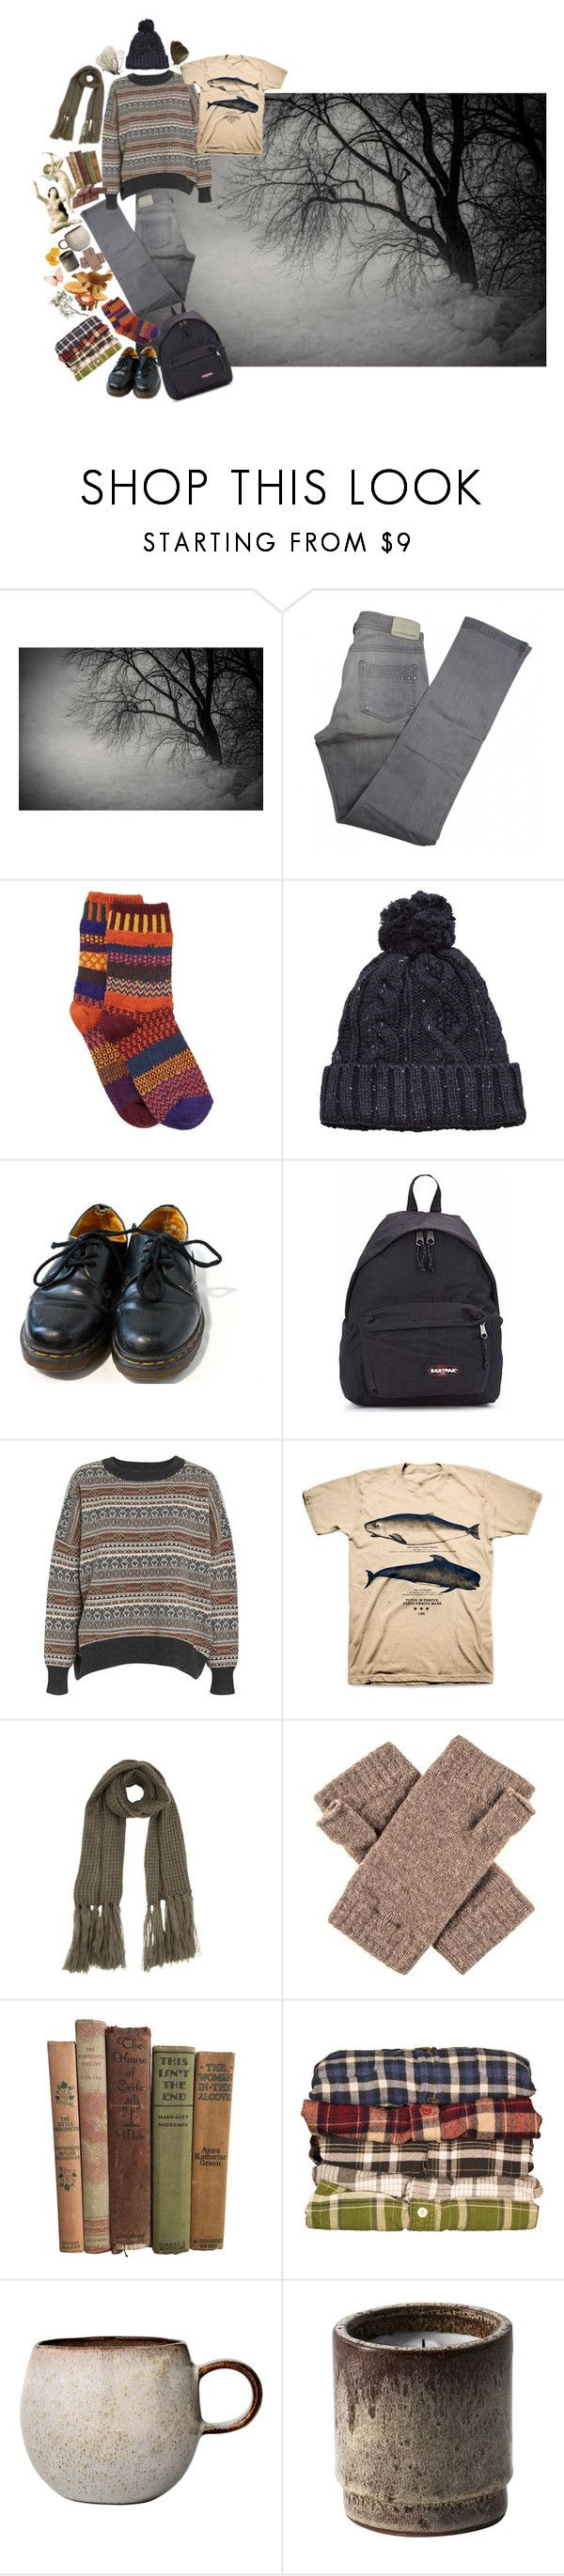 """""""Disorder"""" by florencebriggs ❤ liked on Polyvore featuring Disney, Comptoir Des Cotonniers, Solmate Socks, MANGO, Dr. Martens, Eastpak, Wood Wood, LIST, Bloomingville and ferm LIVING"""